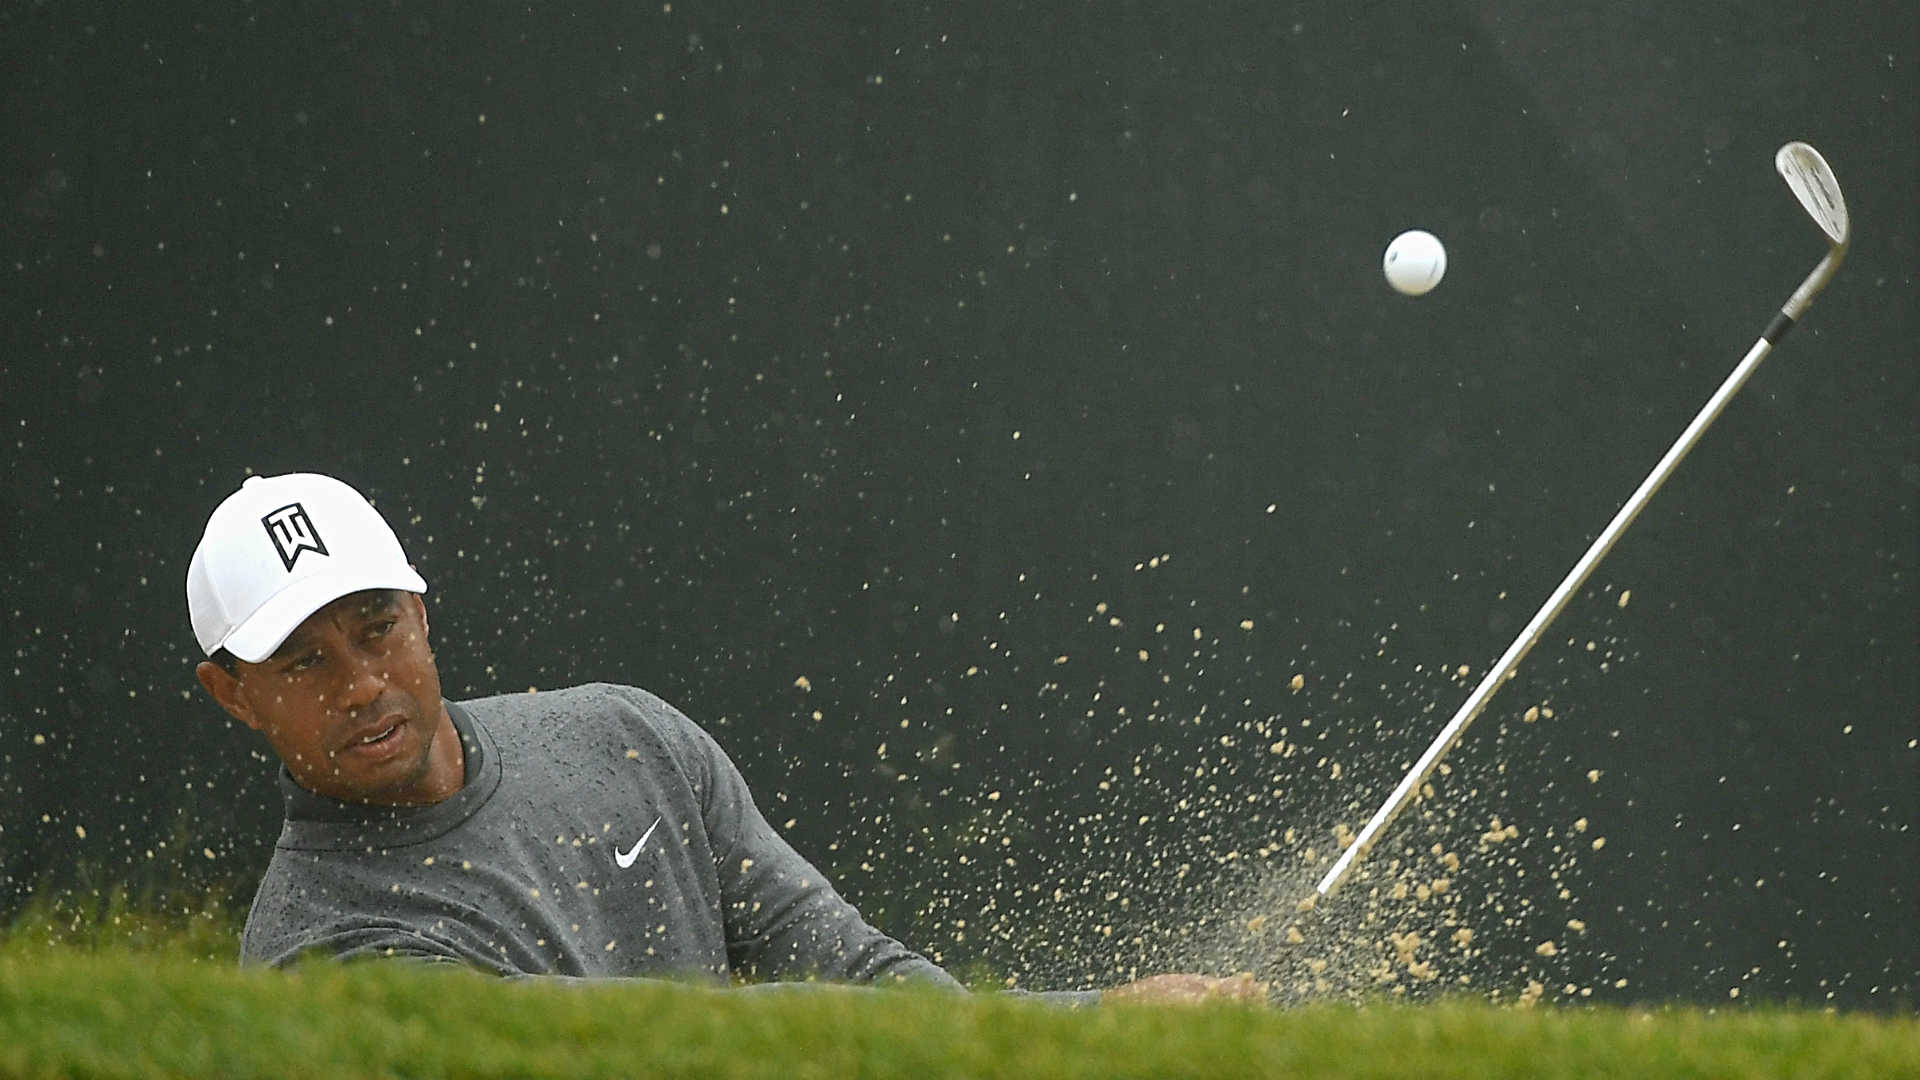 Tiger Woods score: Round 1 recap, highlights from U.S. Open